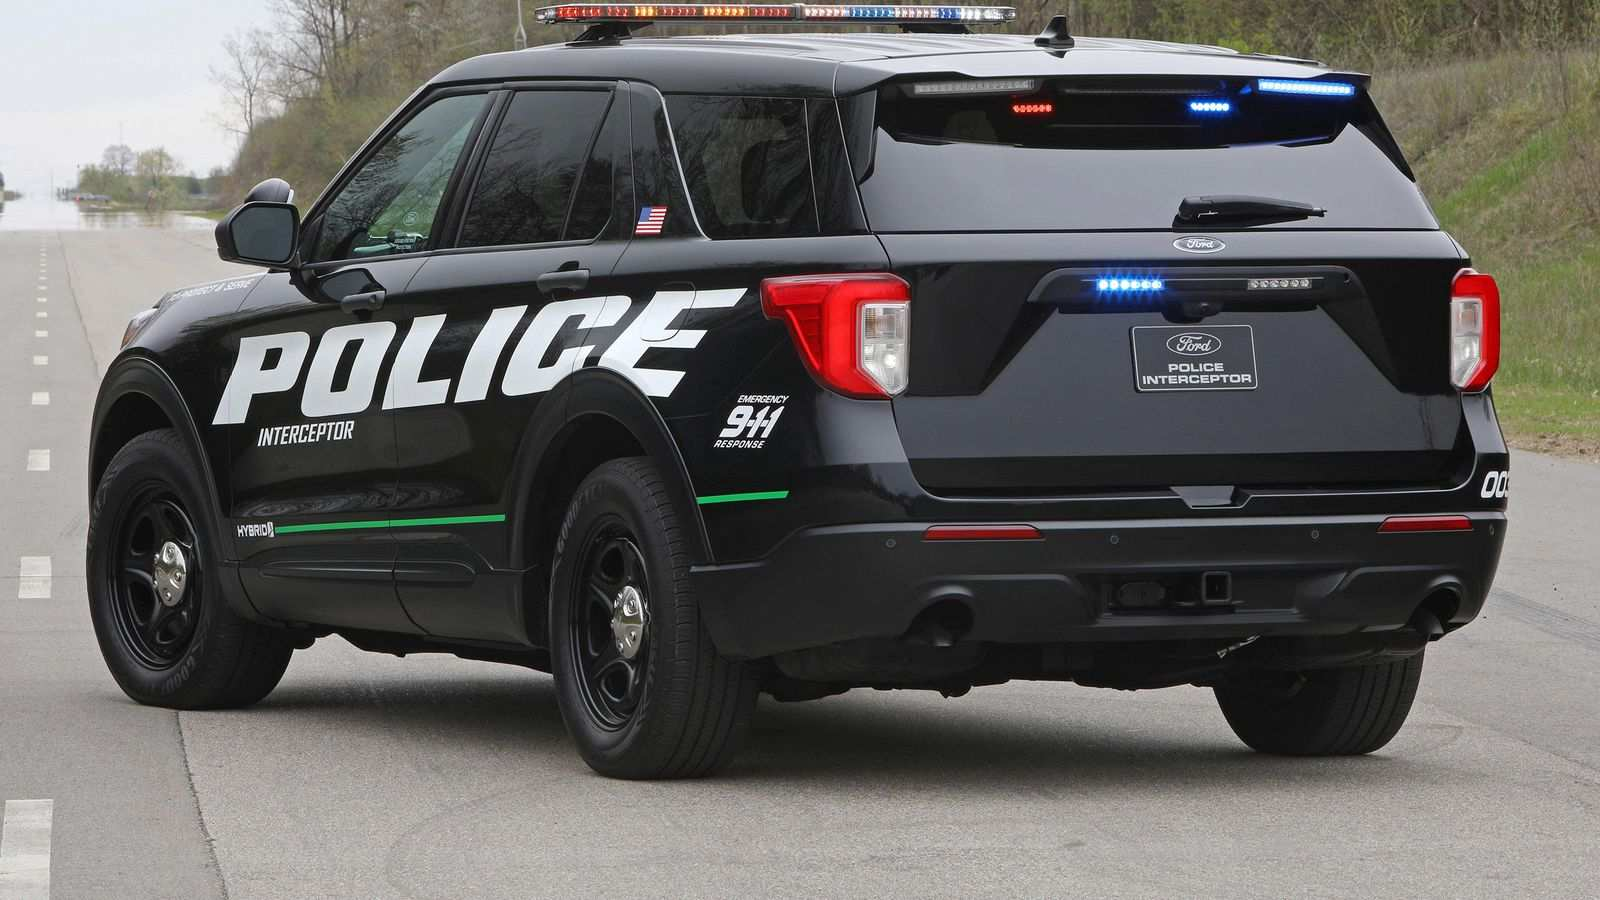 90 The Best Ford Police Interceptor 2020 Photos